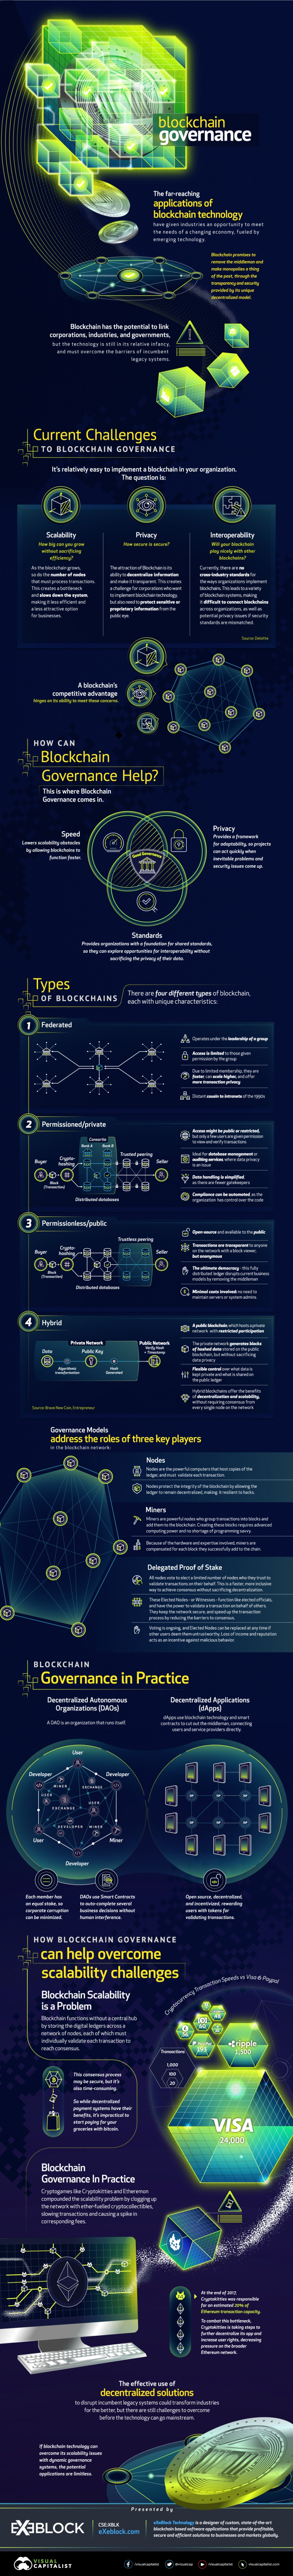 blockchain-governance-infographic